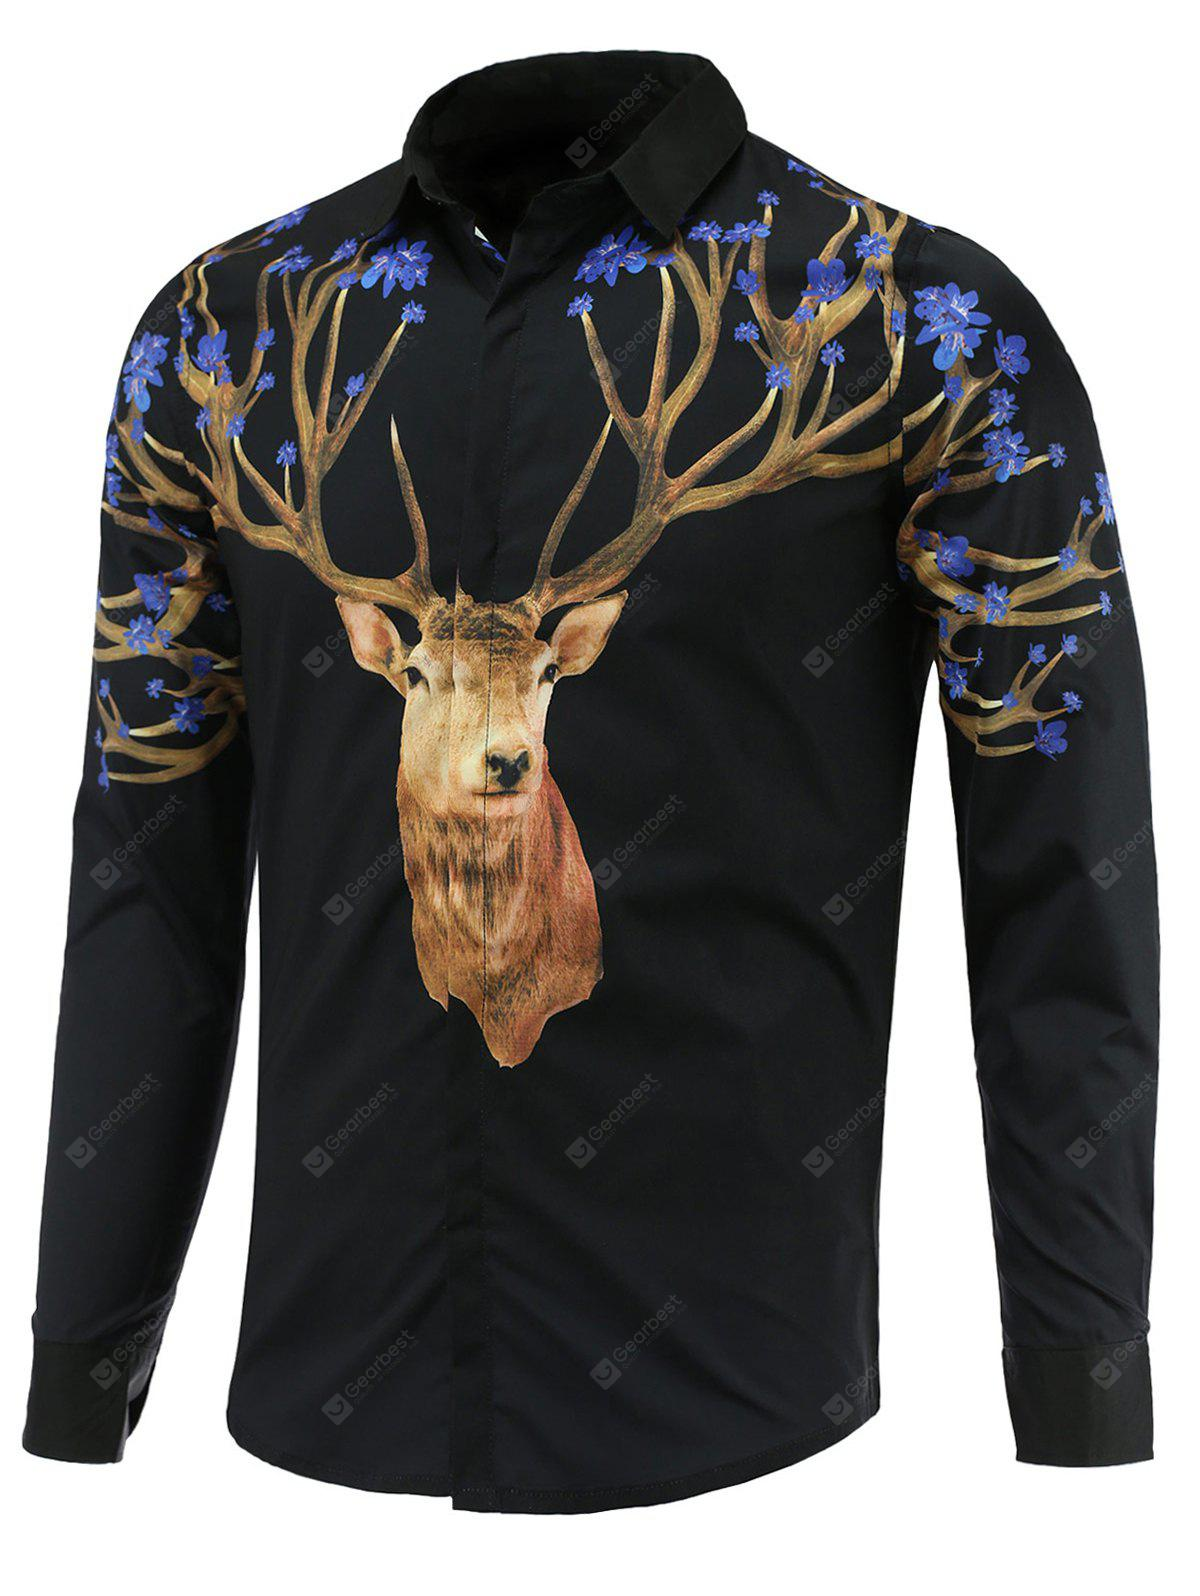 Turn-Down Collar Long Sleeve Sika Deer Printed Shirt